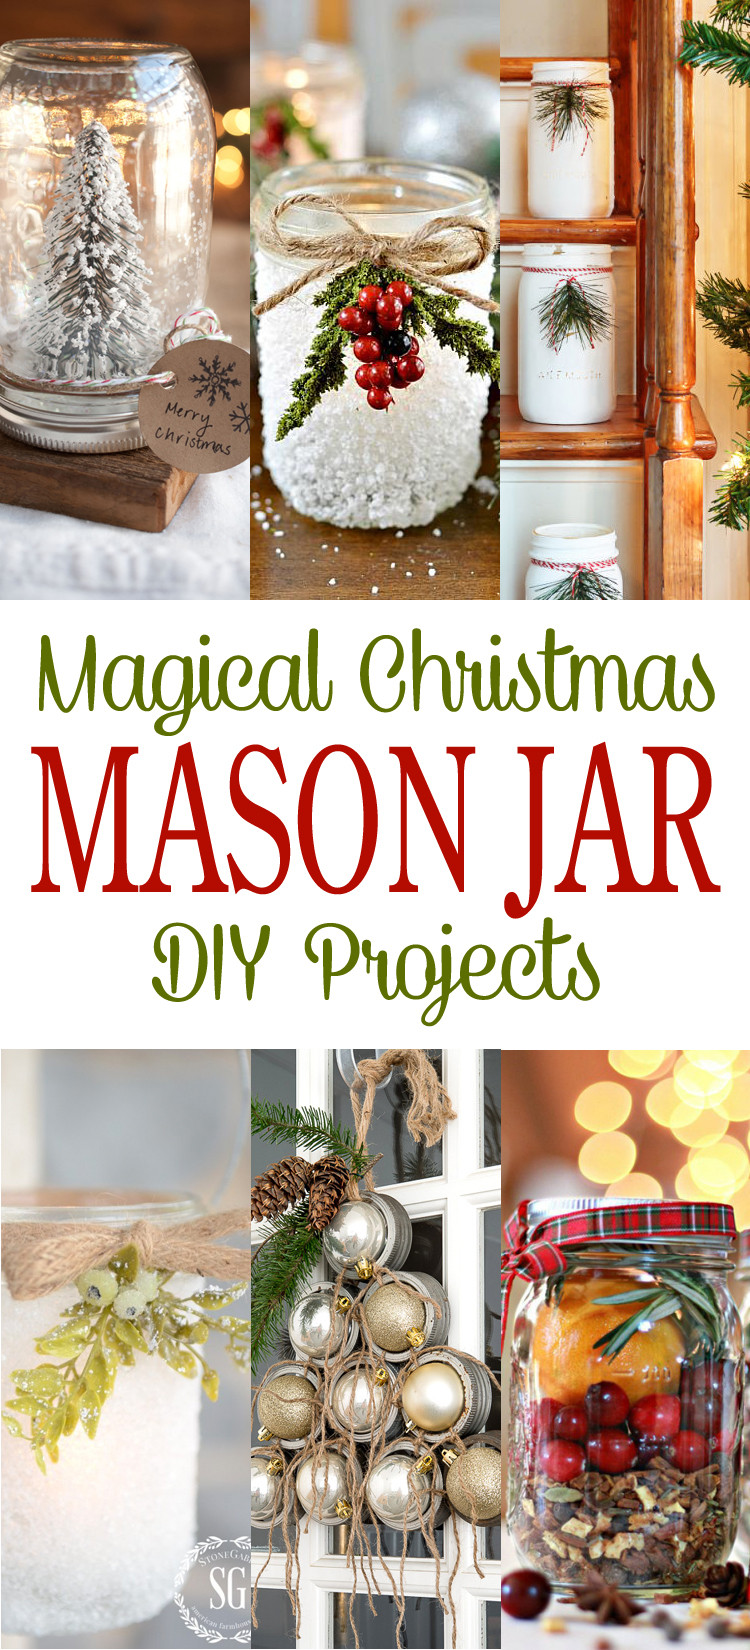 Best ideas about Christmas DIY Ideas . Save or Pin Magical Christmas Mason Jar DIY Projects The Cottage Market Now.